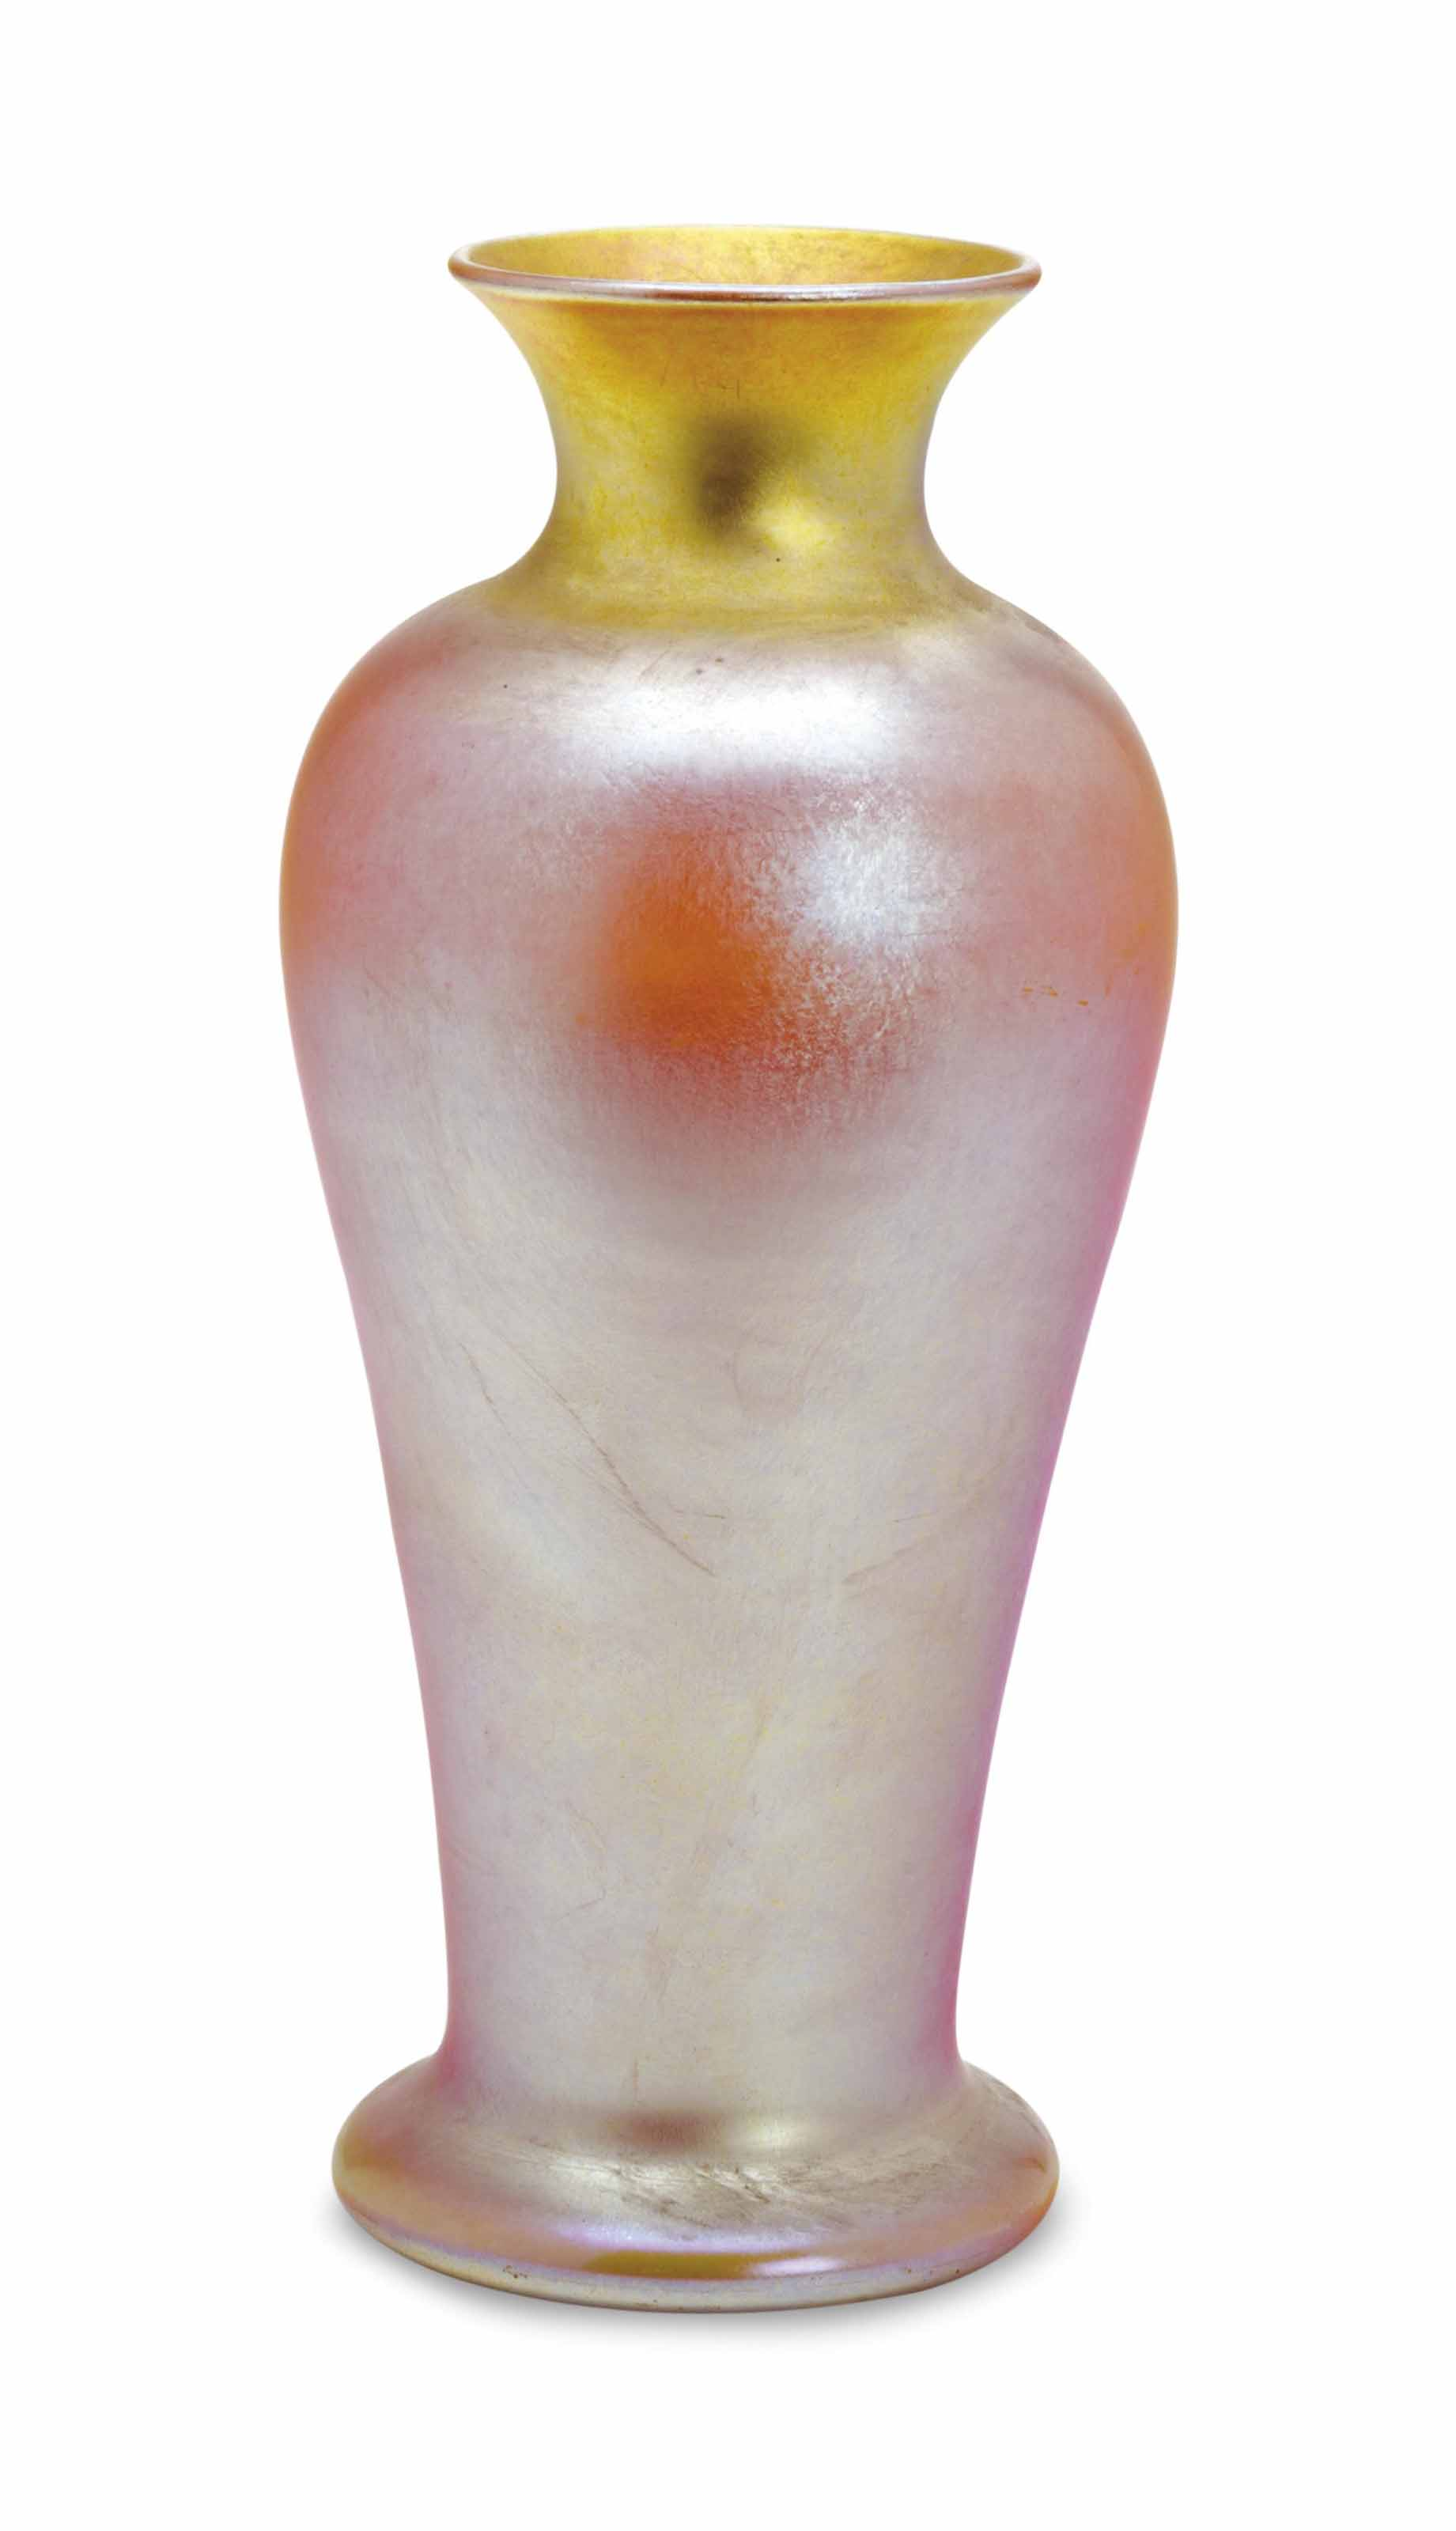 AN AMERICAN IRIDESCENT YELLOW GLASS VASE,